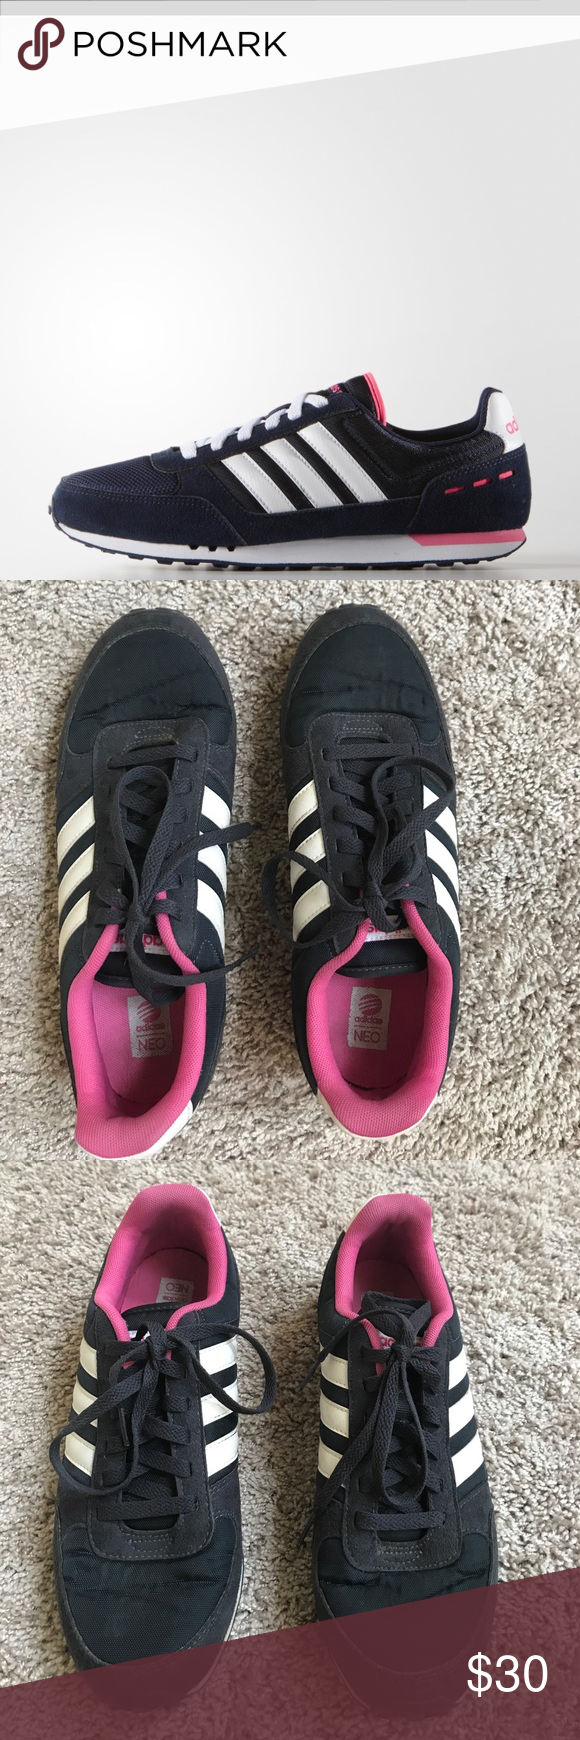 Adidas Neo Ortholite City Trainer Sneakers | New sneakers, Adidas ...